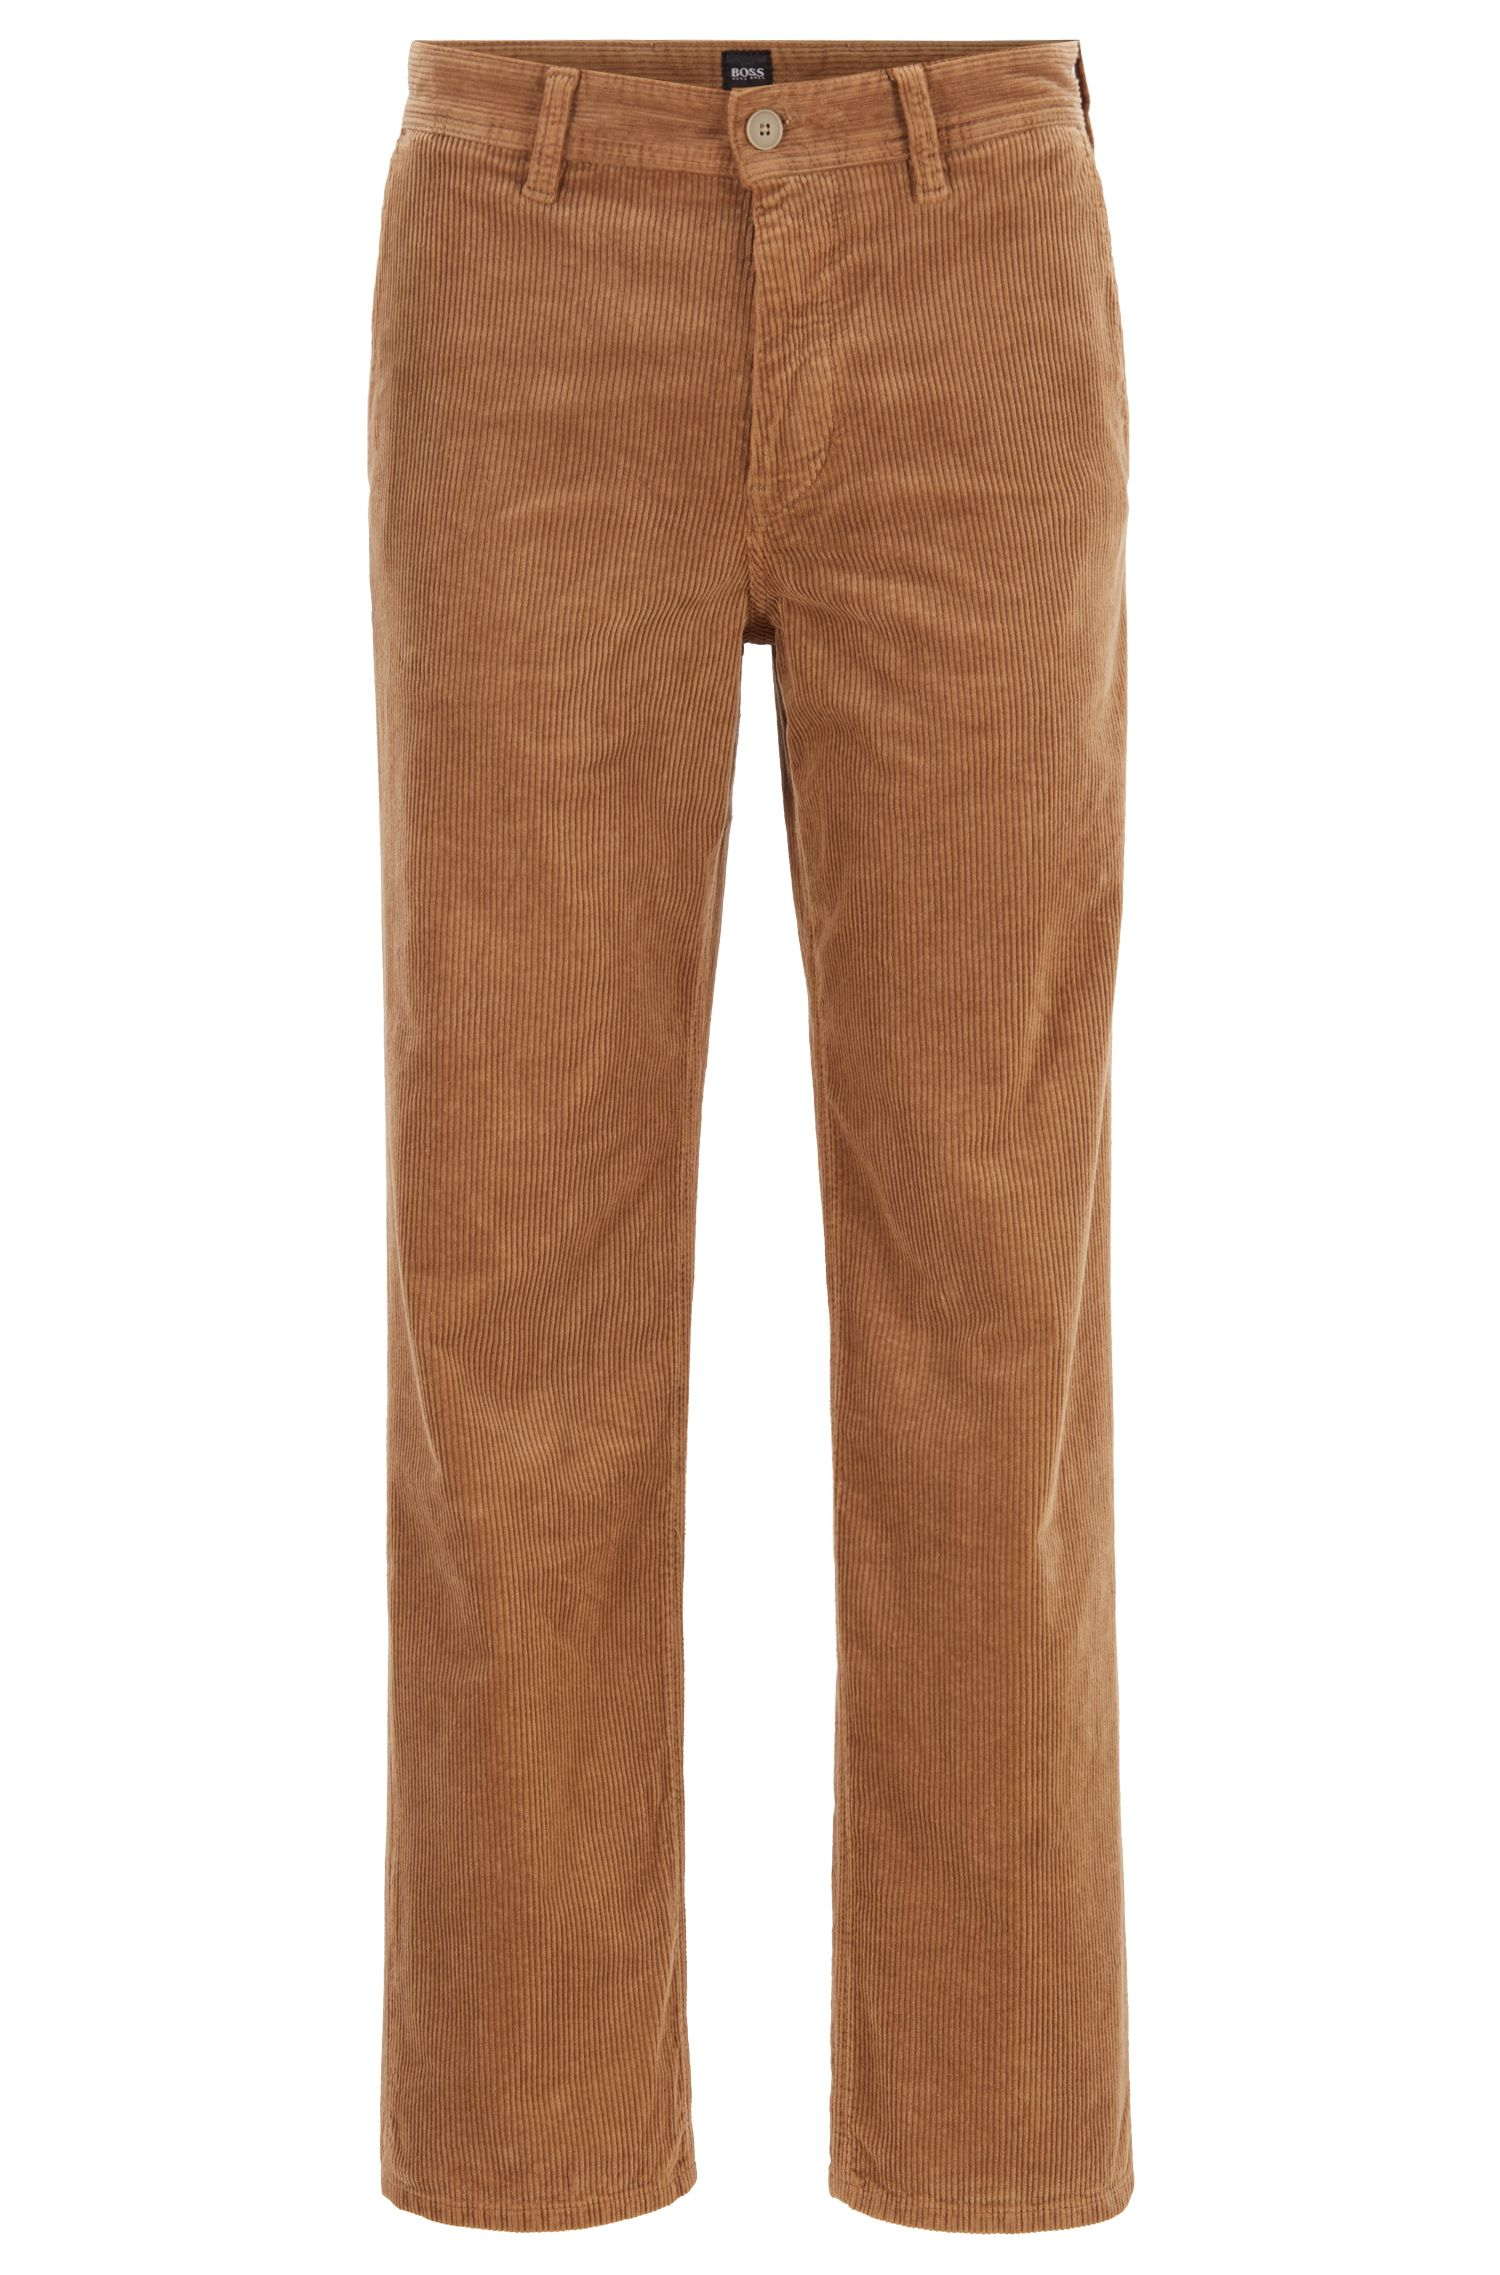 Pantalon Regular Fit en velours côtelé italien stretch, Marron